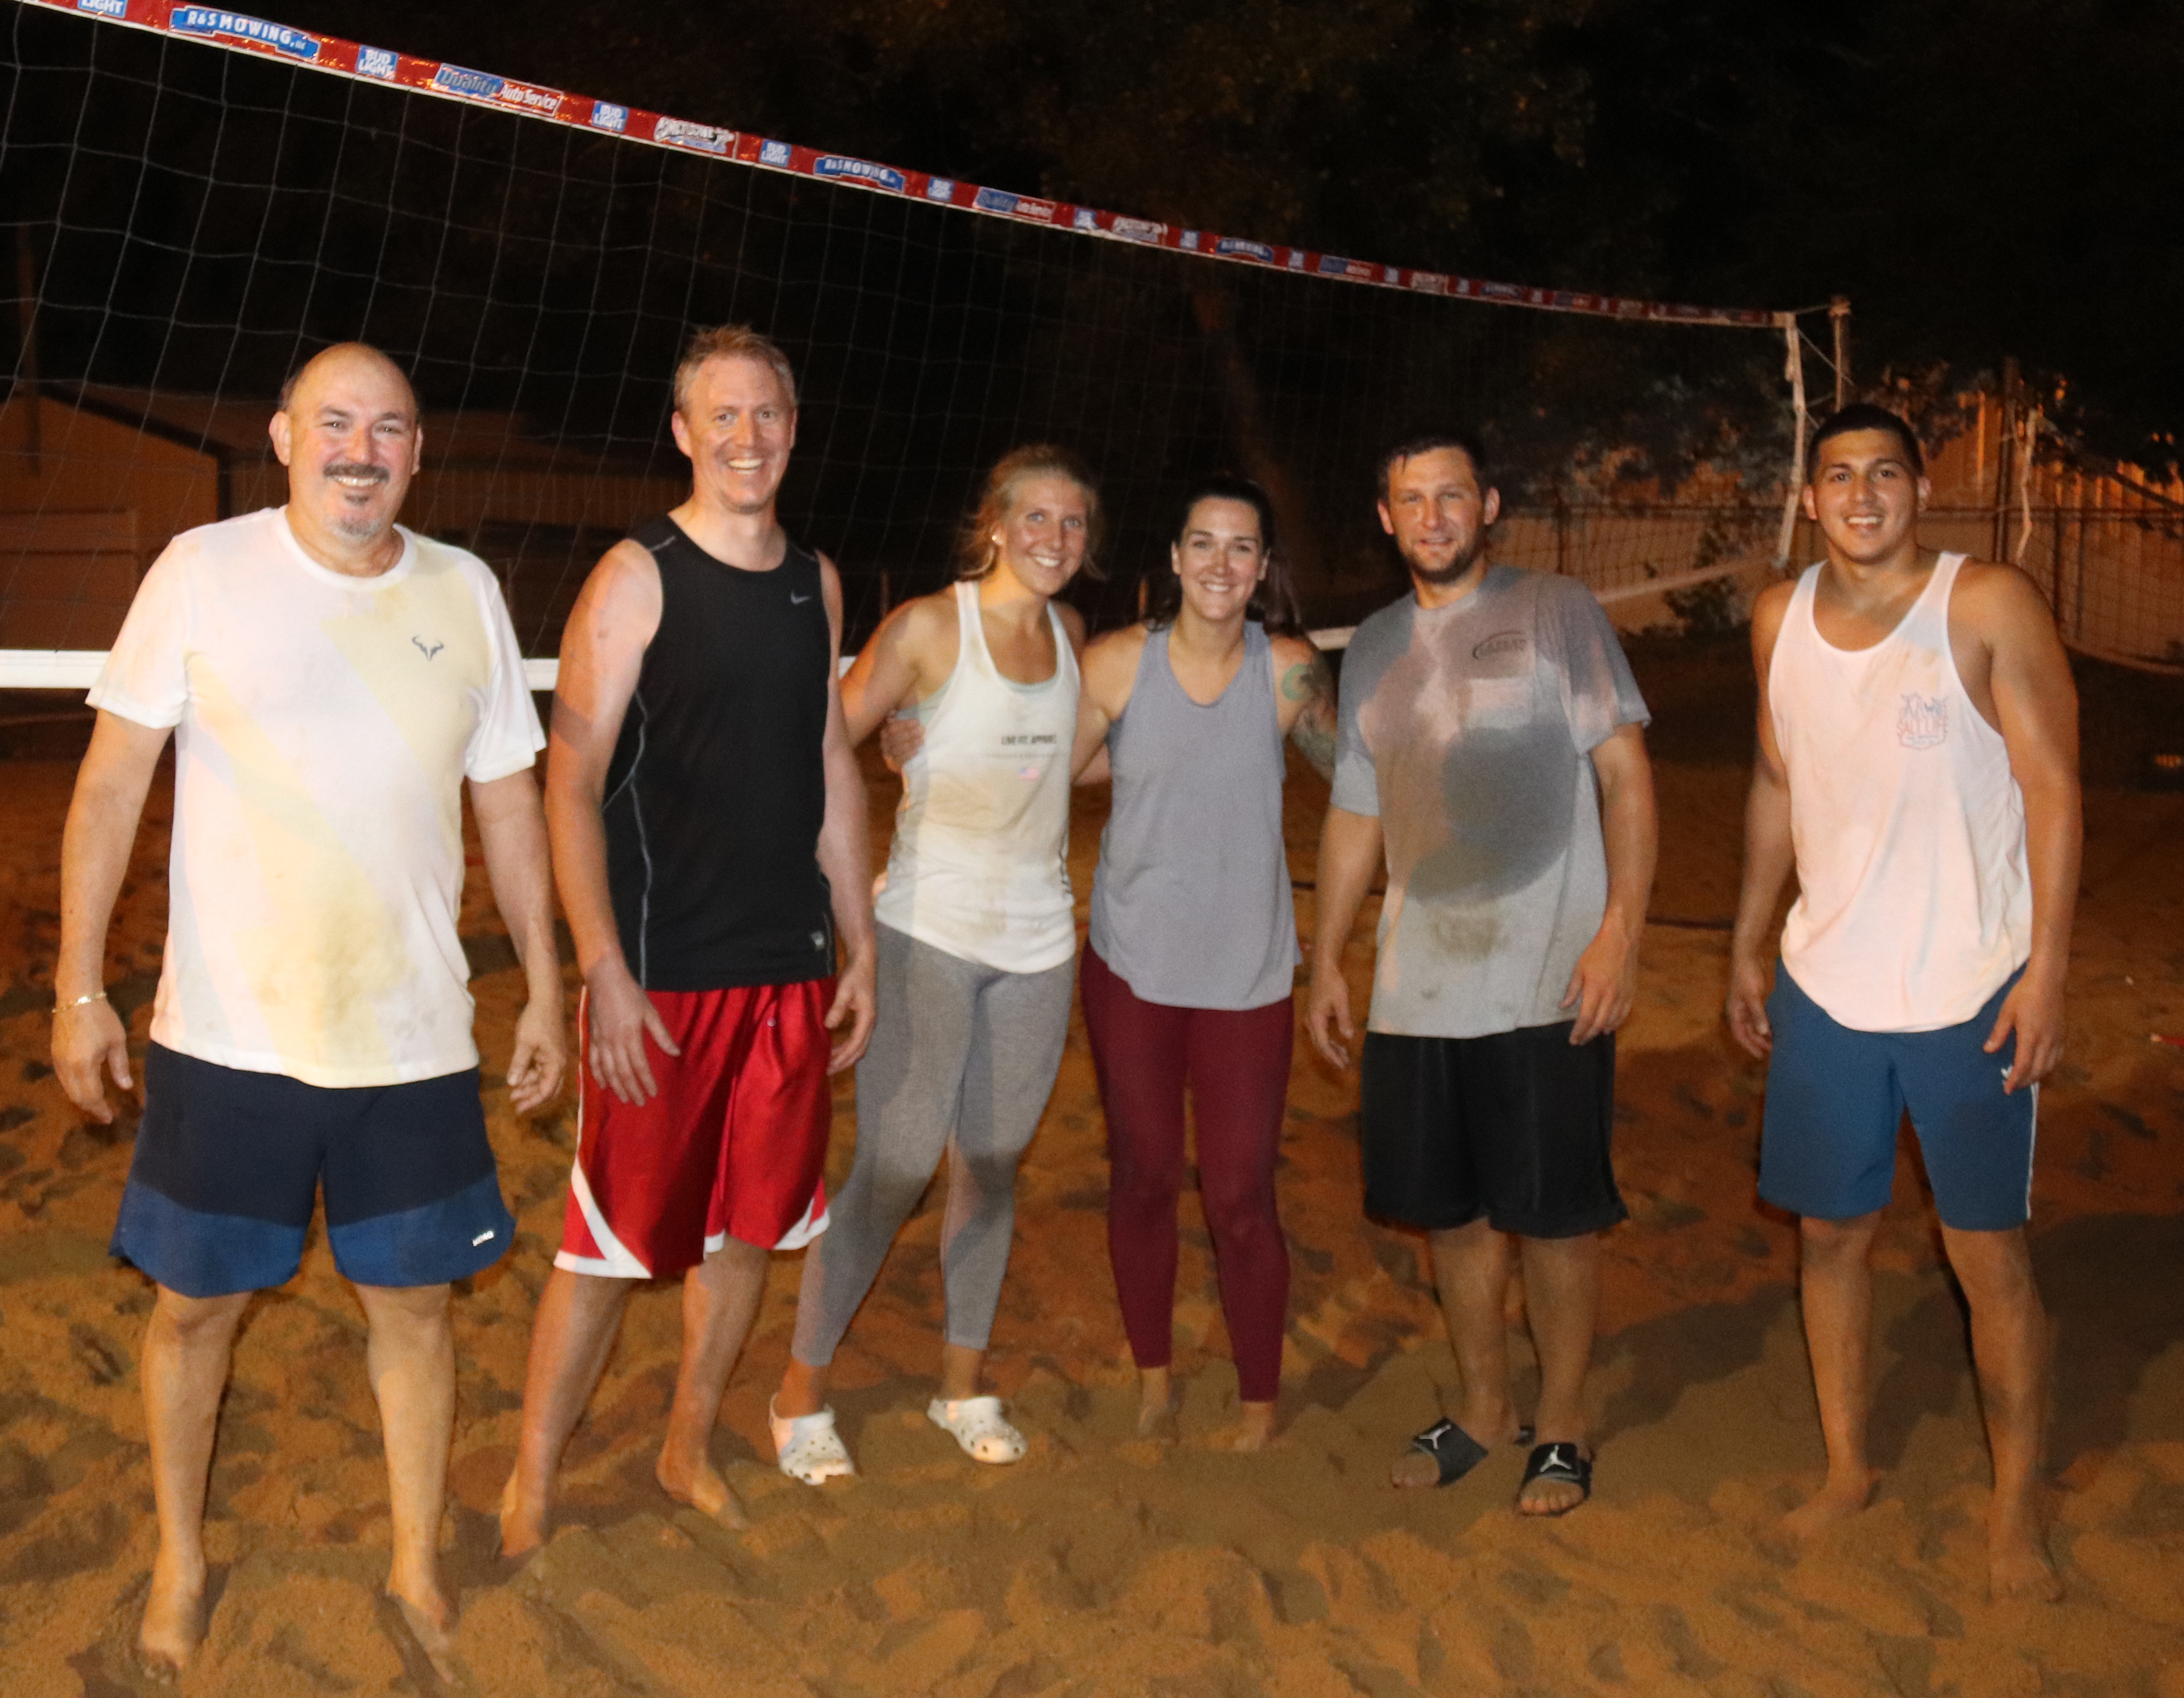 Snap Fitness wins Comet Bowl Sand Volleyball League tournament